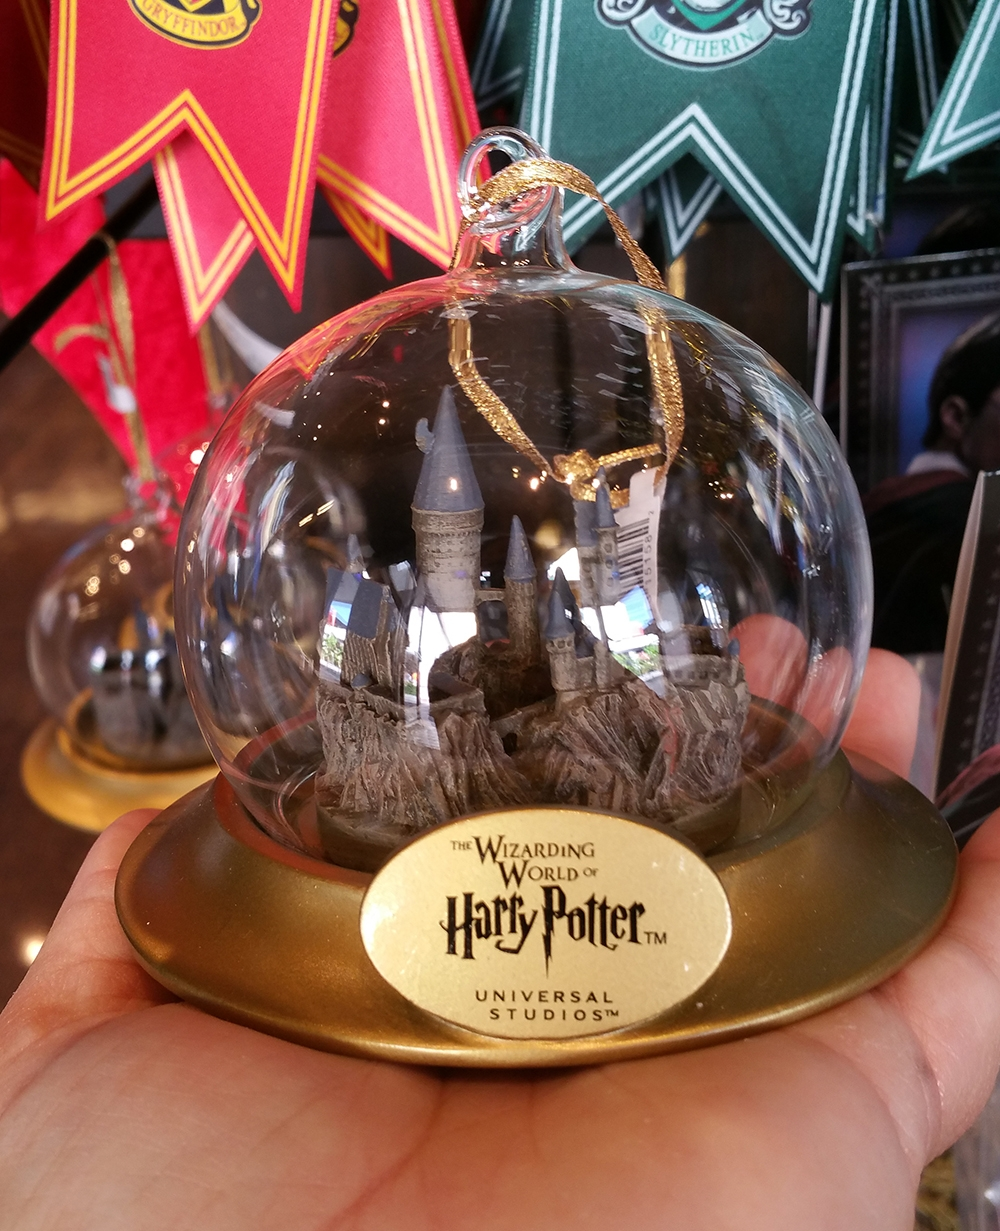 Wizarding World of Harry Potter Ornament Hogwarts Castle Globe